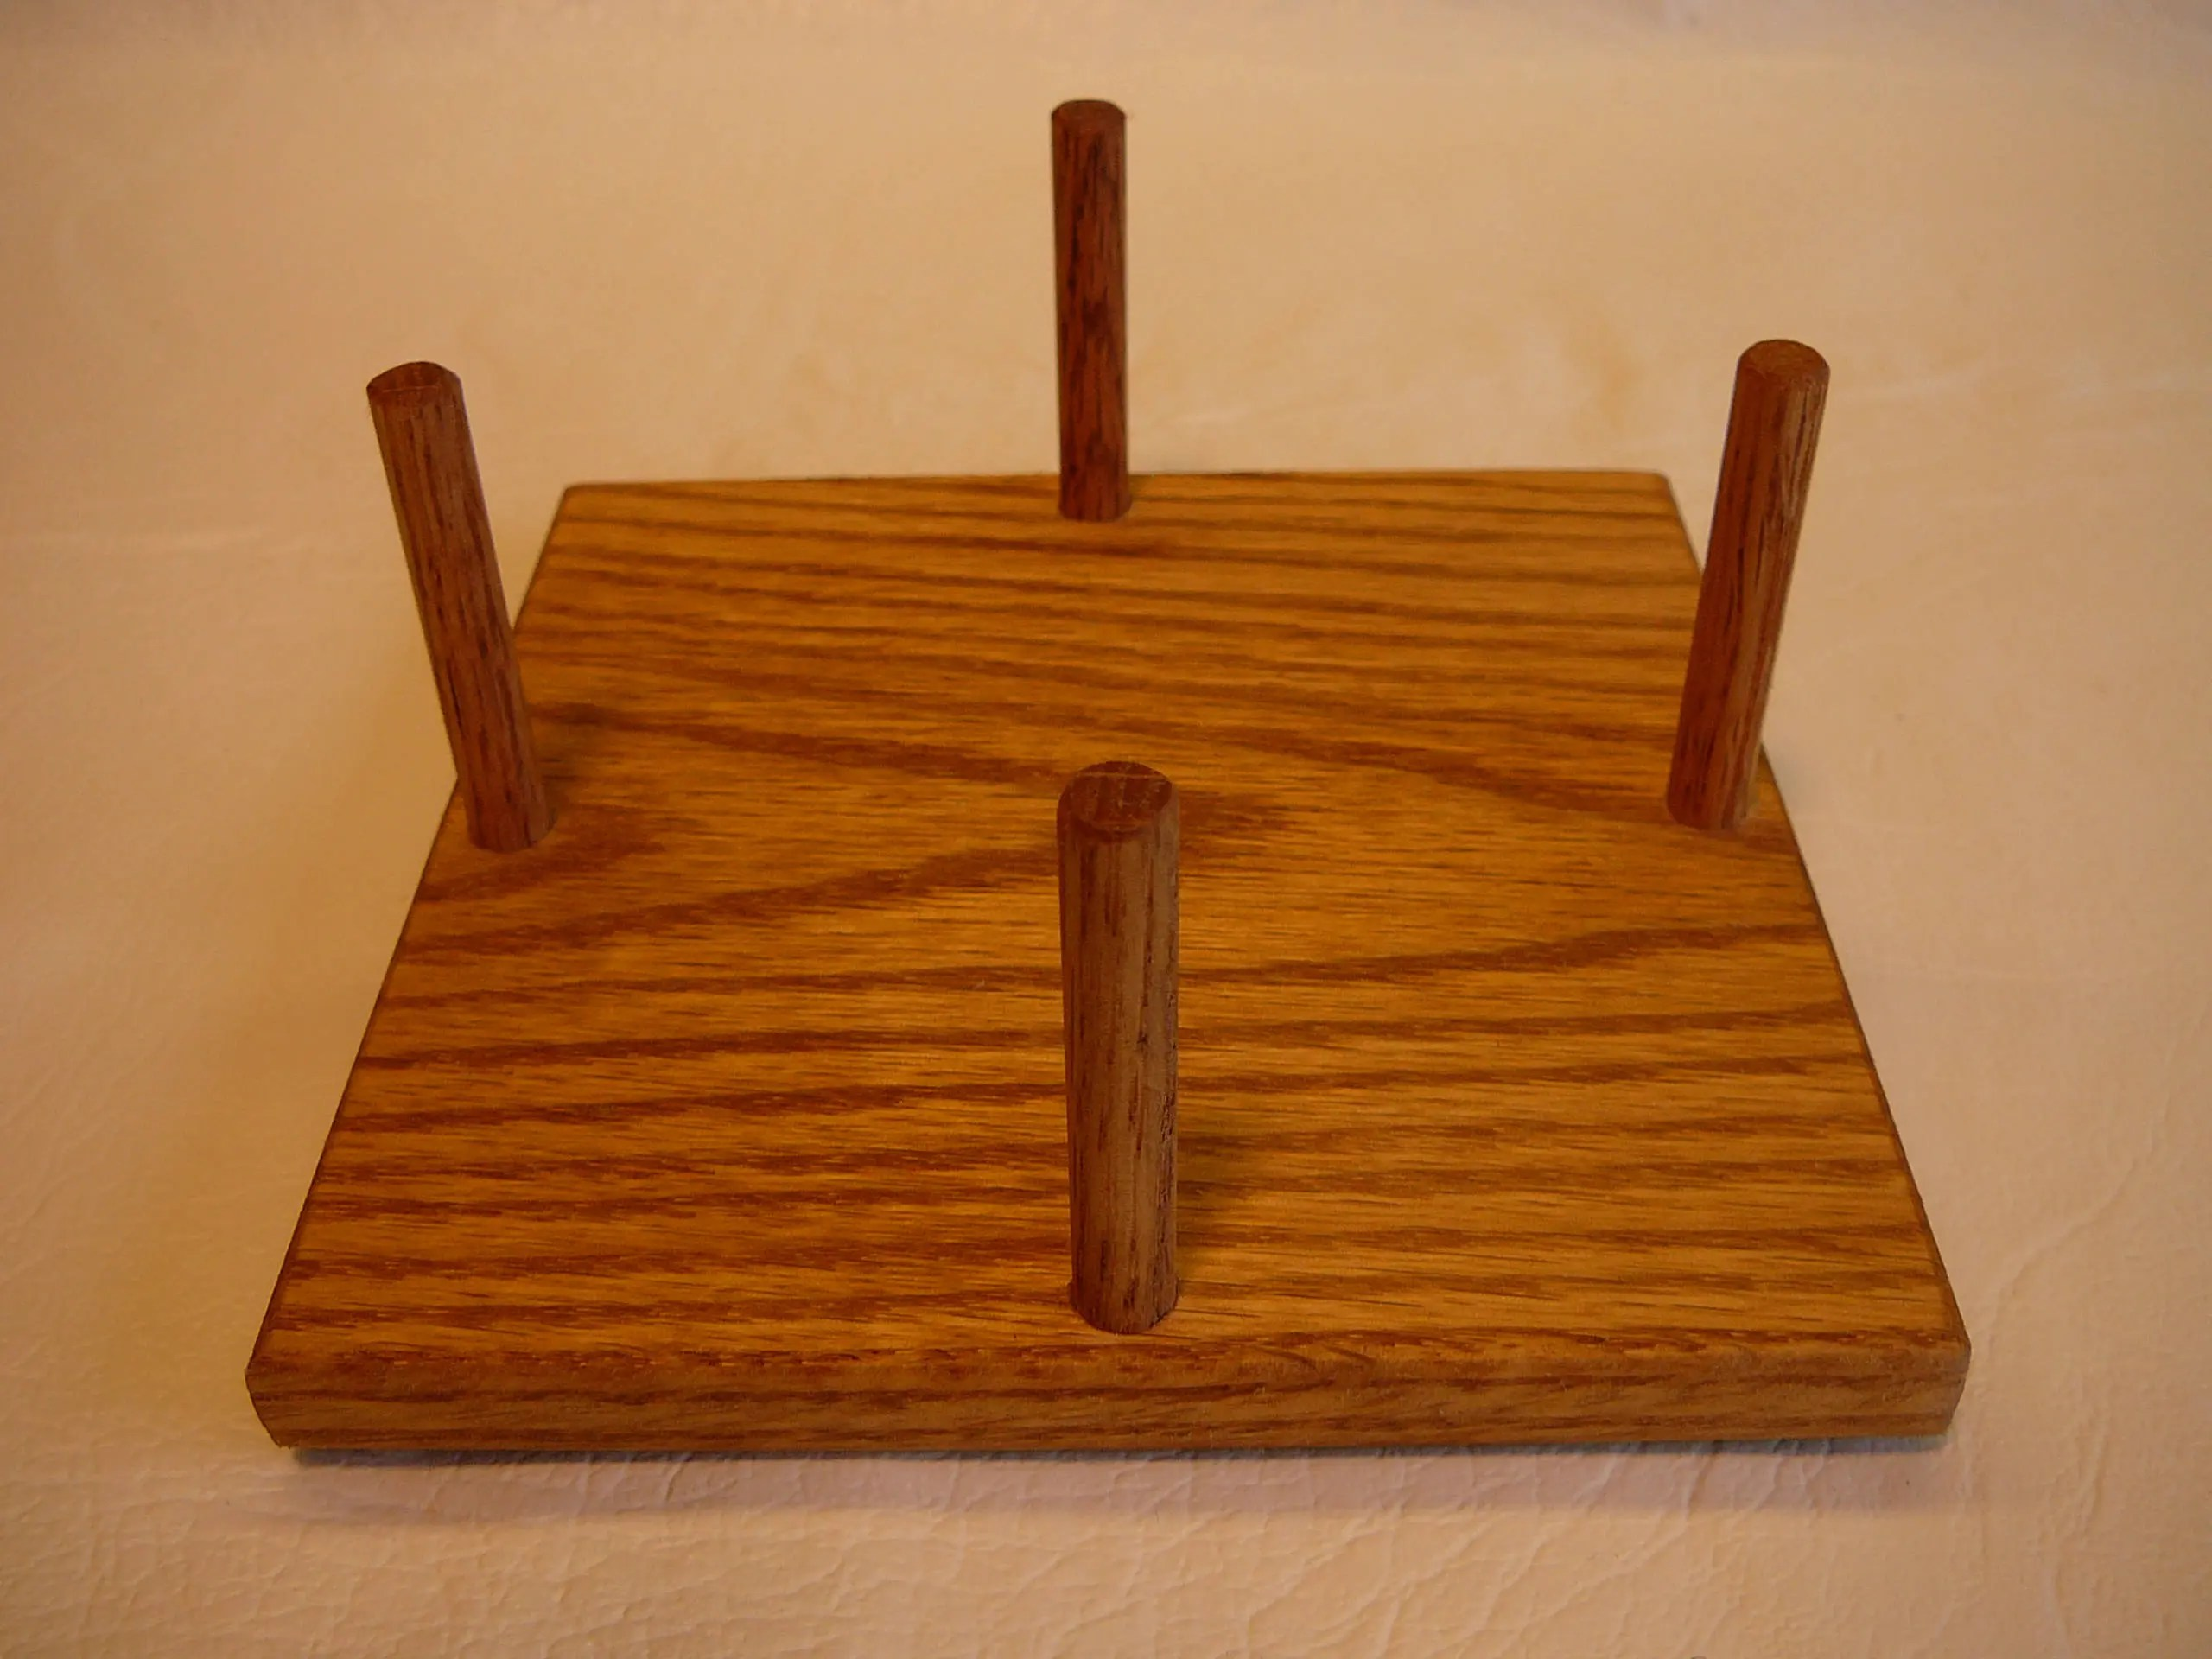 Wooden Coaster Holder Wood Coaster Holder